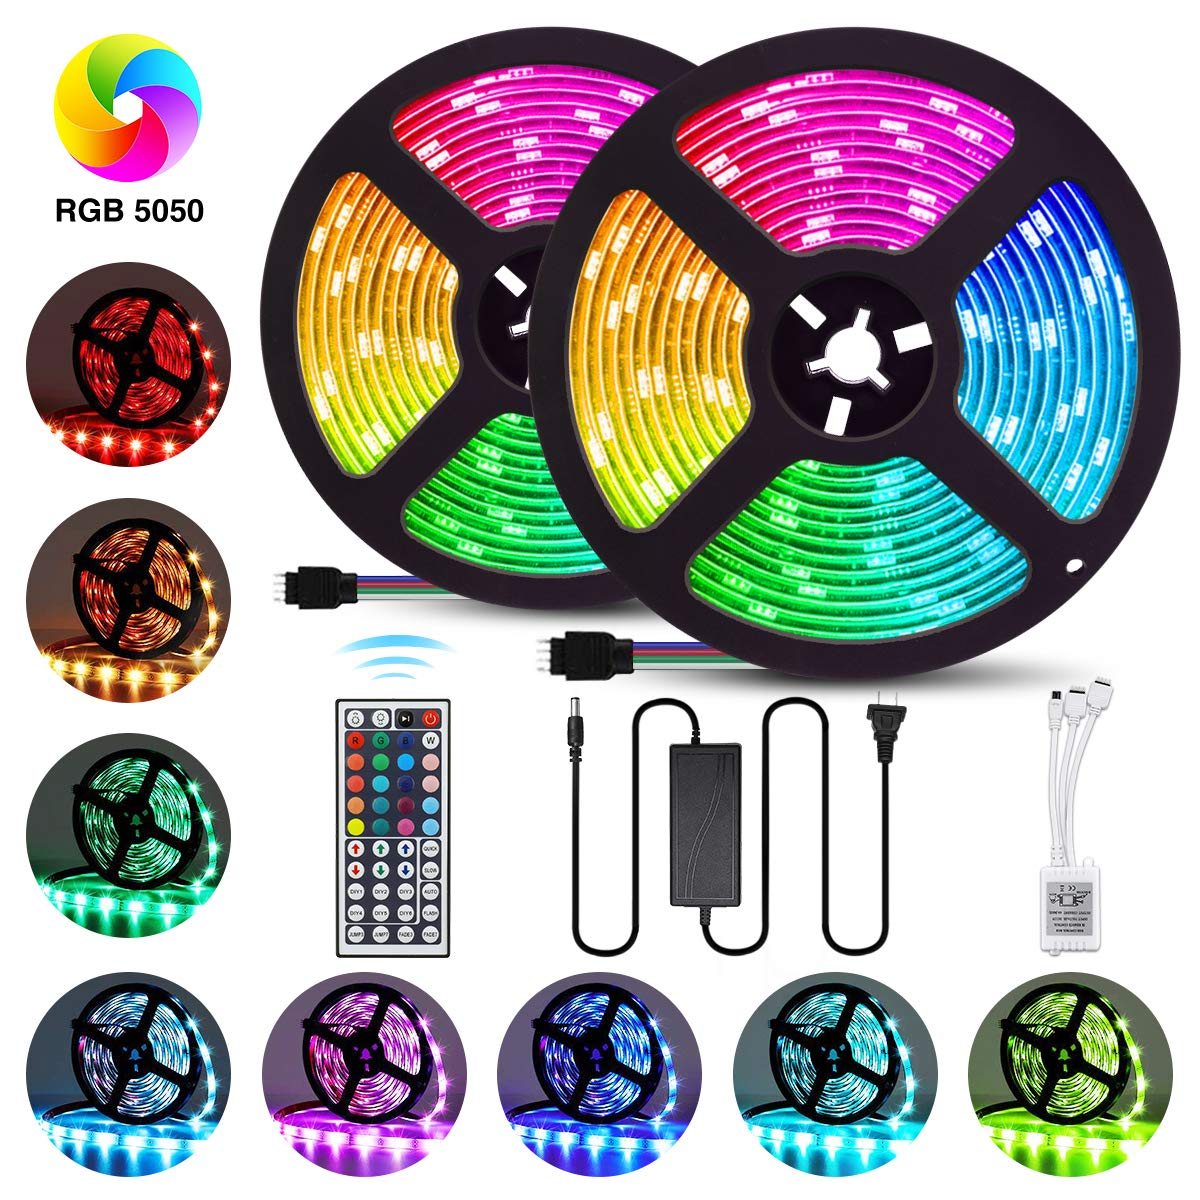 Elfeland LED Strip Lights 32.8FT/10M 300 LEDs SMD5050 RGB Strip Lights IP65 Waterproof Rope Lights Color Changing Flexible Tape Light Kit with 44 Keys IR Remote Controller & 12V 5A Power Supply by Elfeland